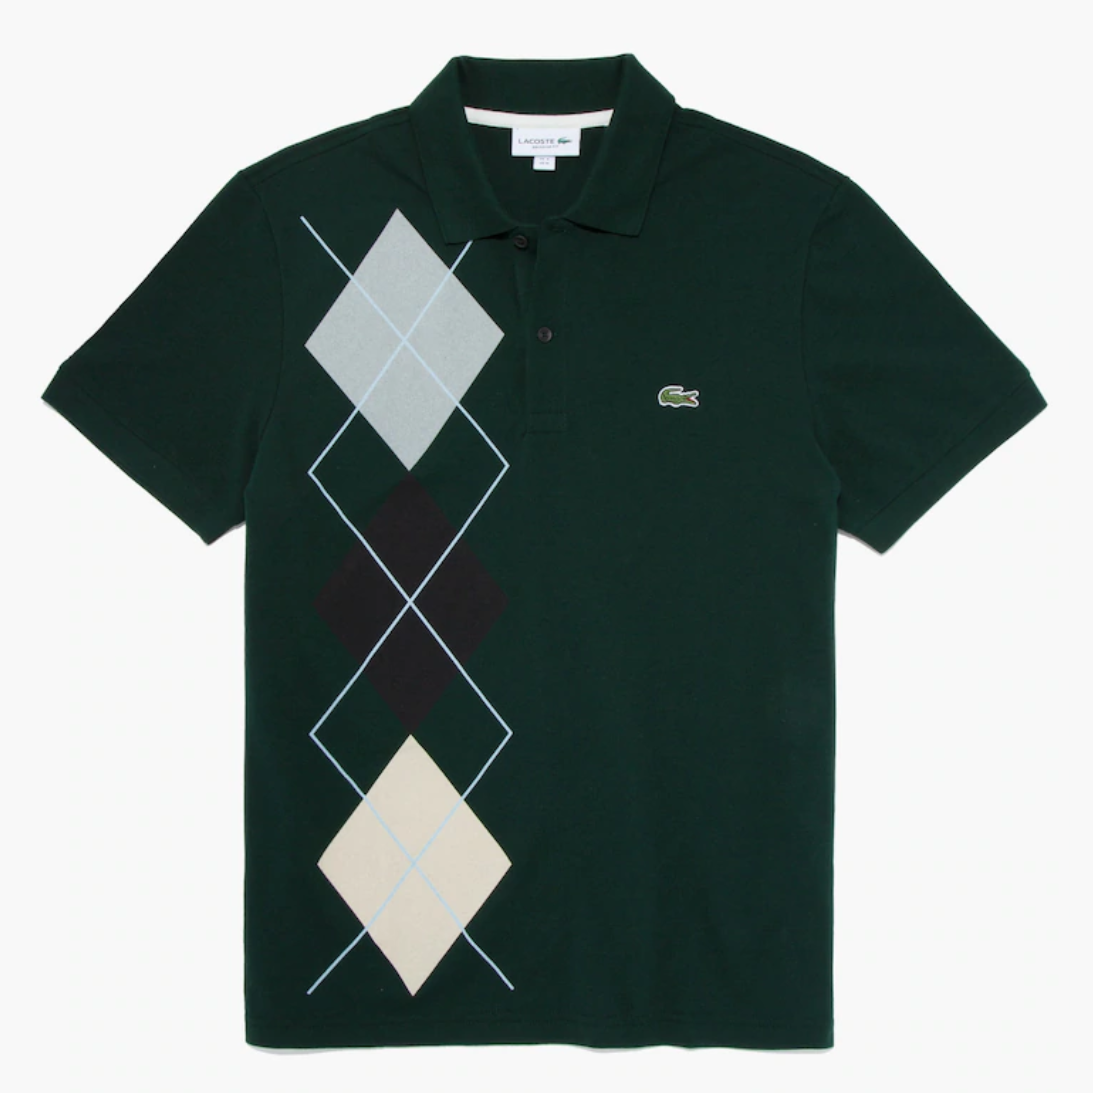 Lacoste 法国鳄鱼 Regular Fit Jacquard Polo衫